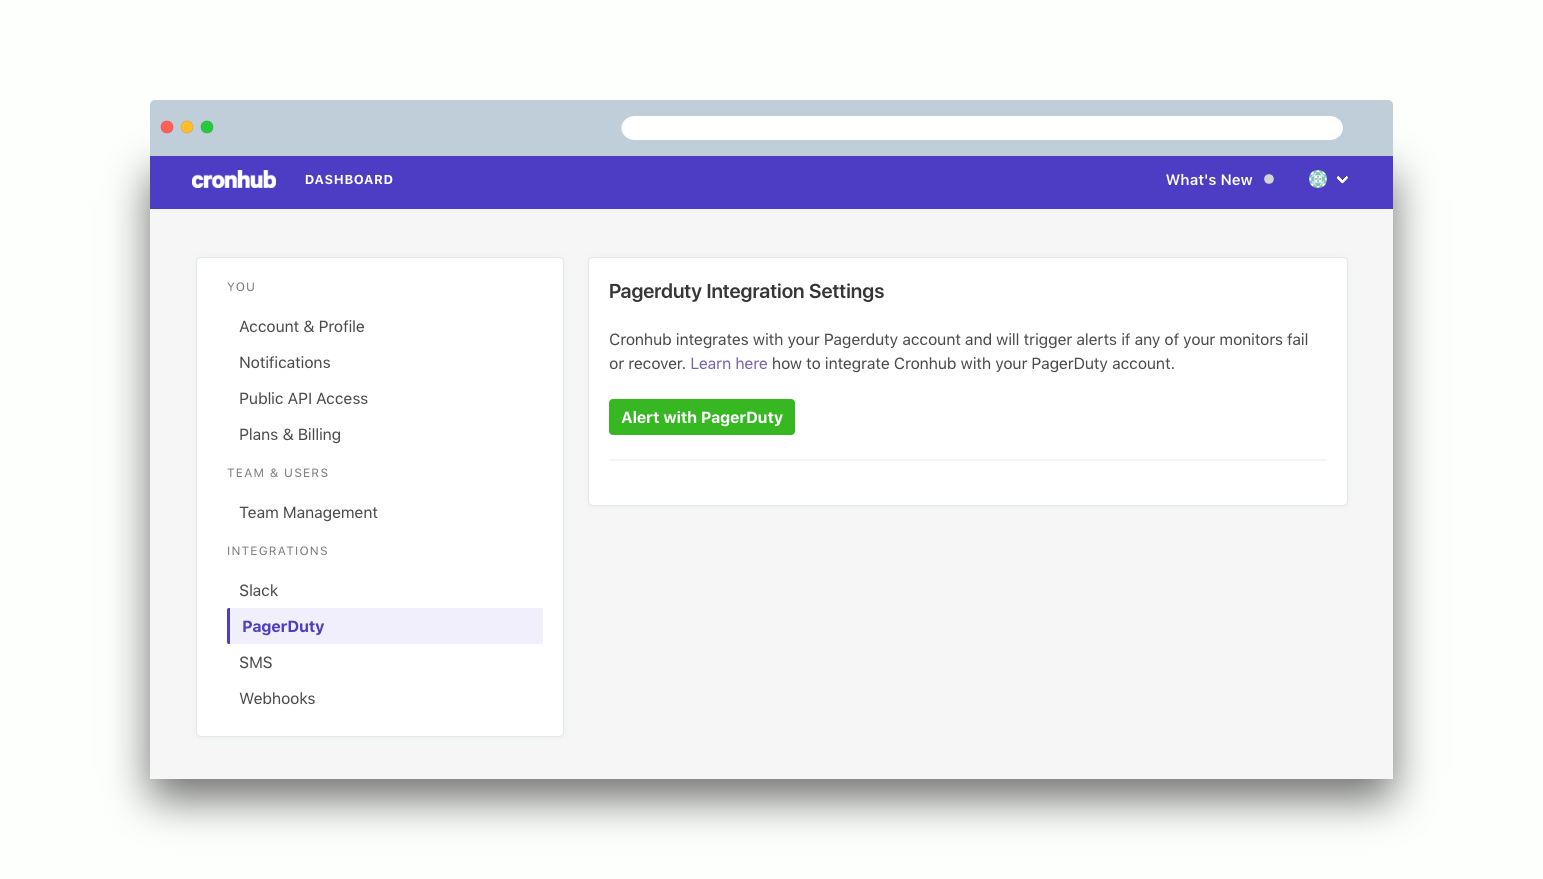 Alert with PagerDuty